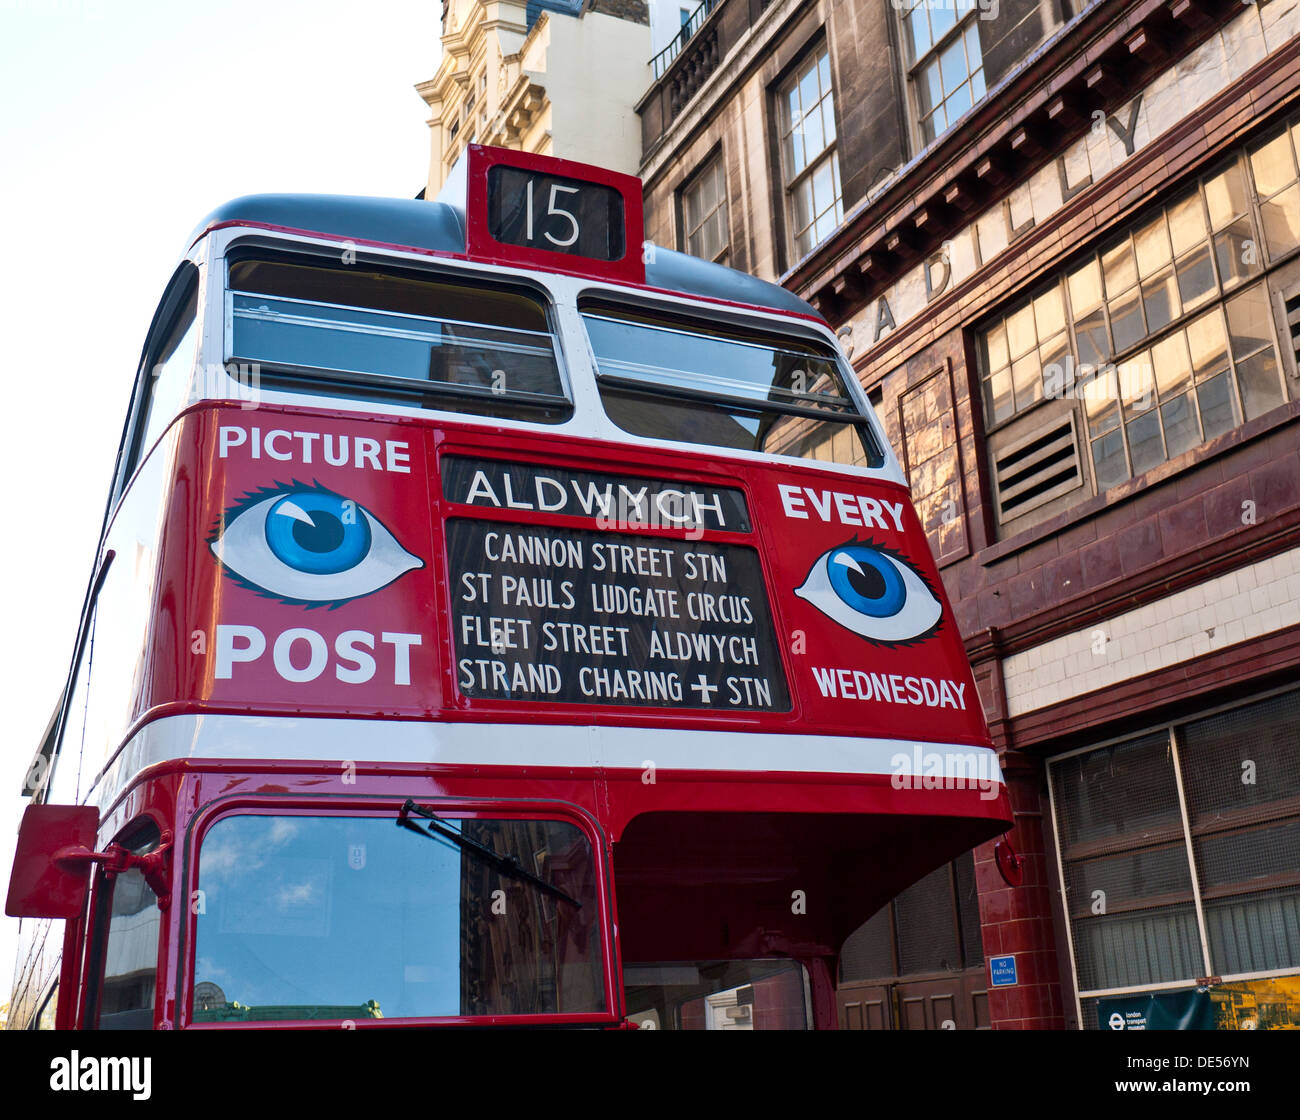 Historic 1940's restored traditional UK red double decker bus, with war time advertising posters for Picture Post magazine - Stock Image